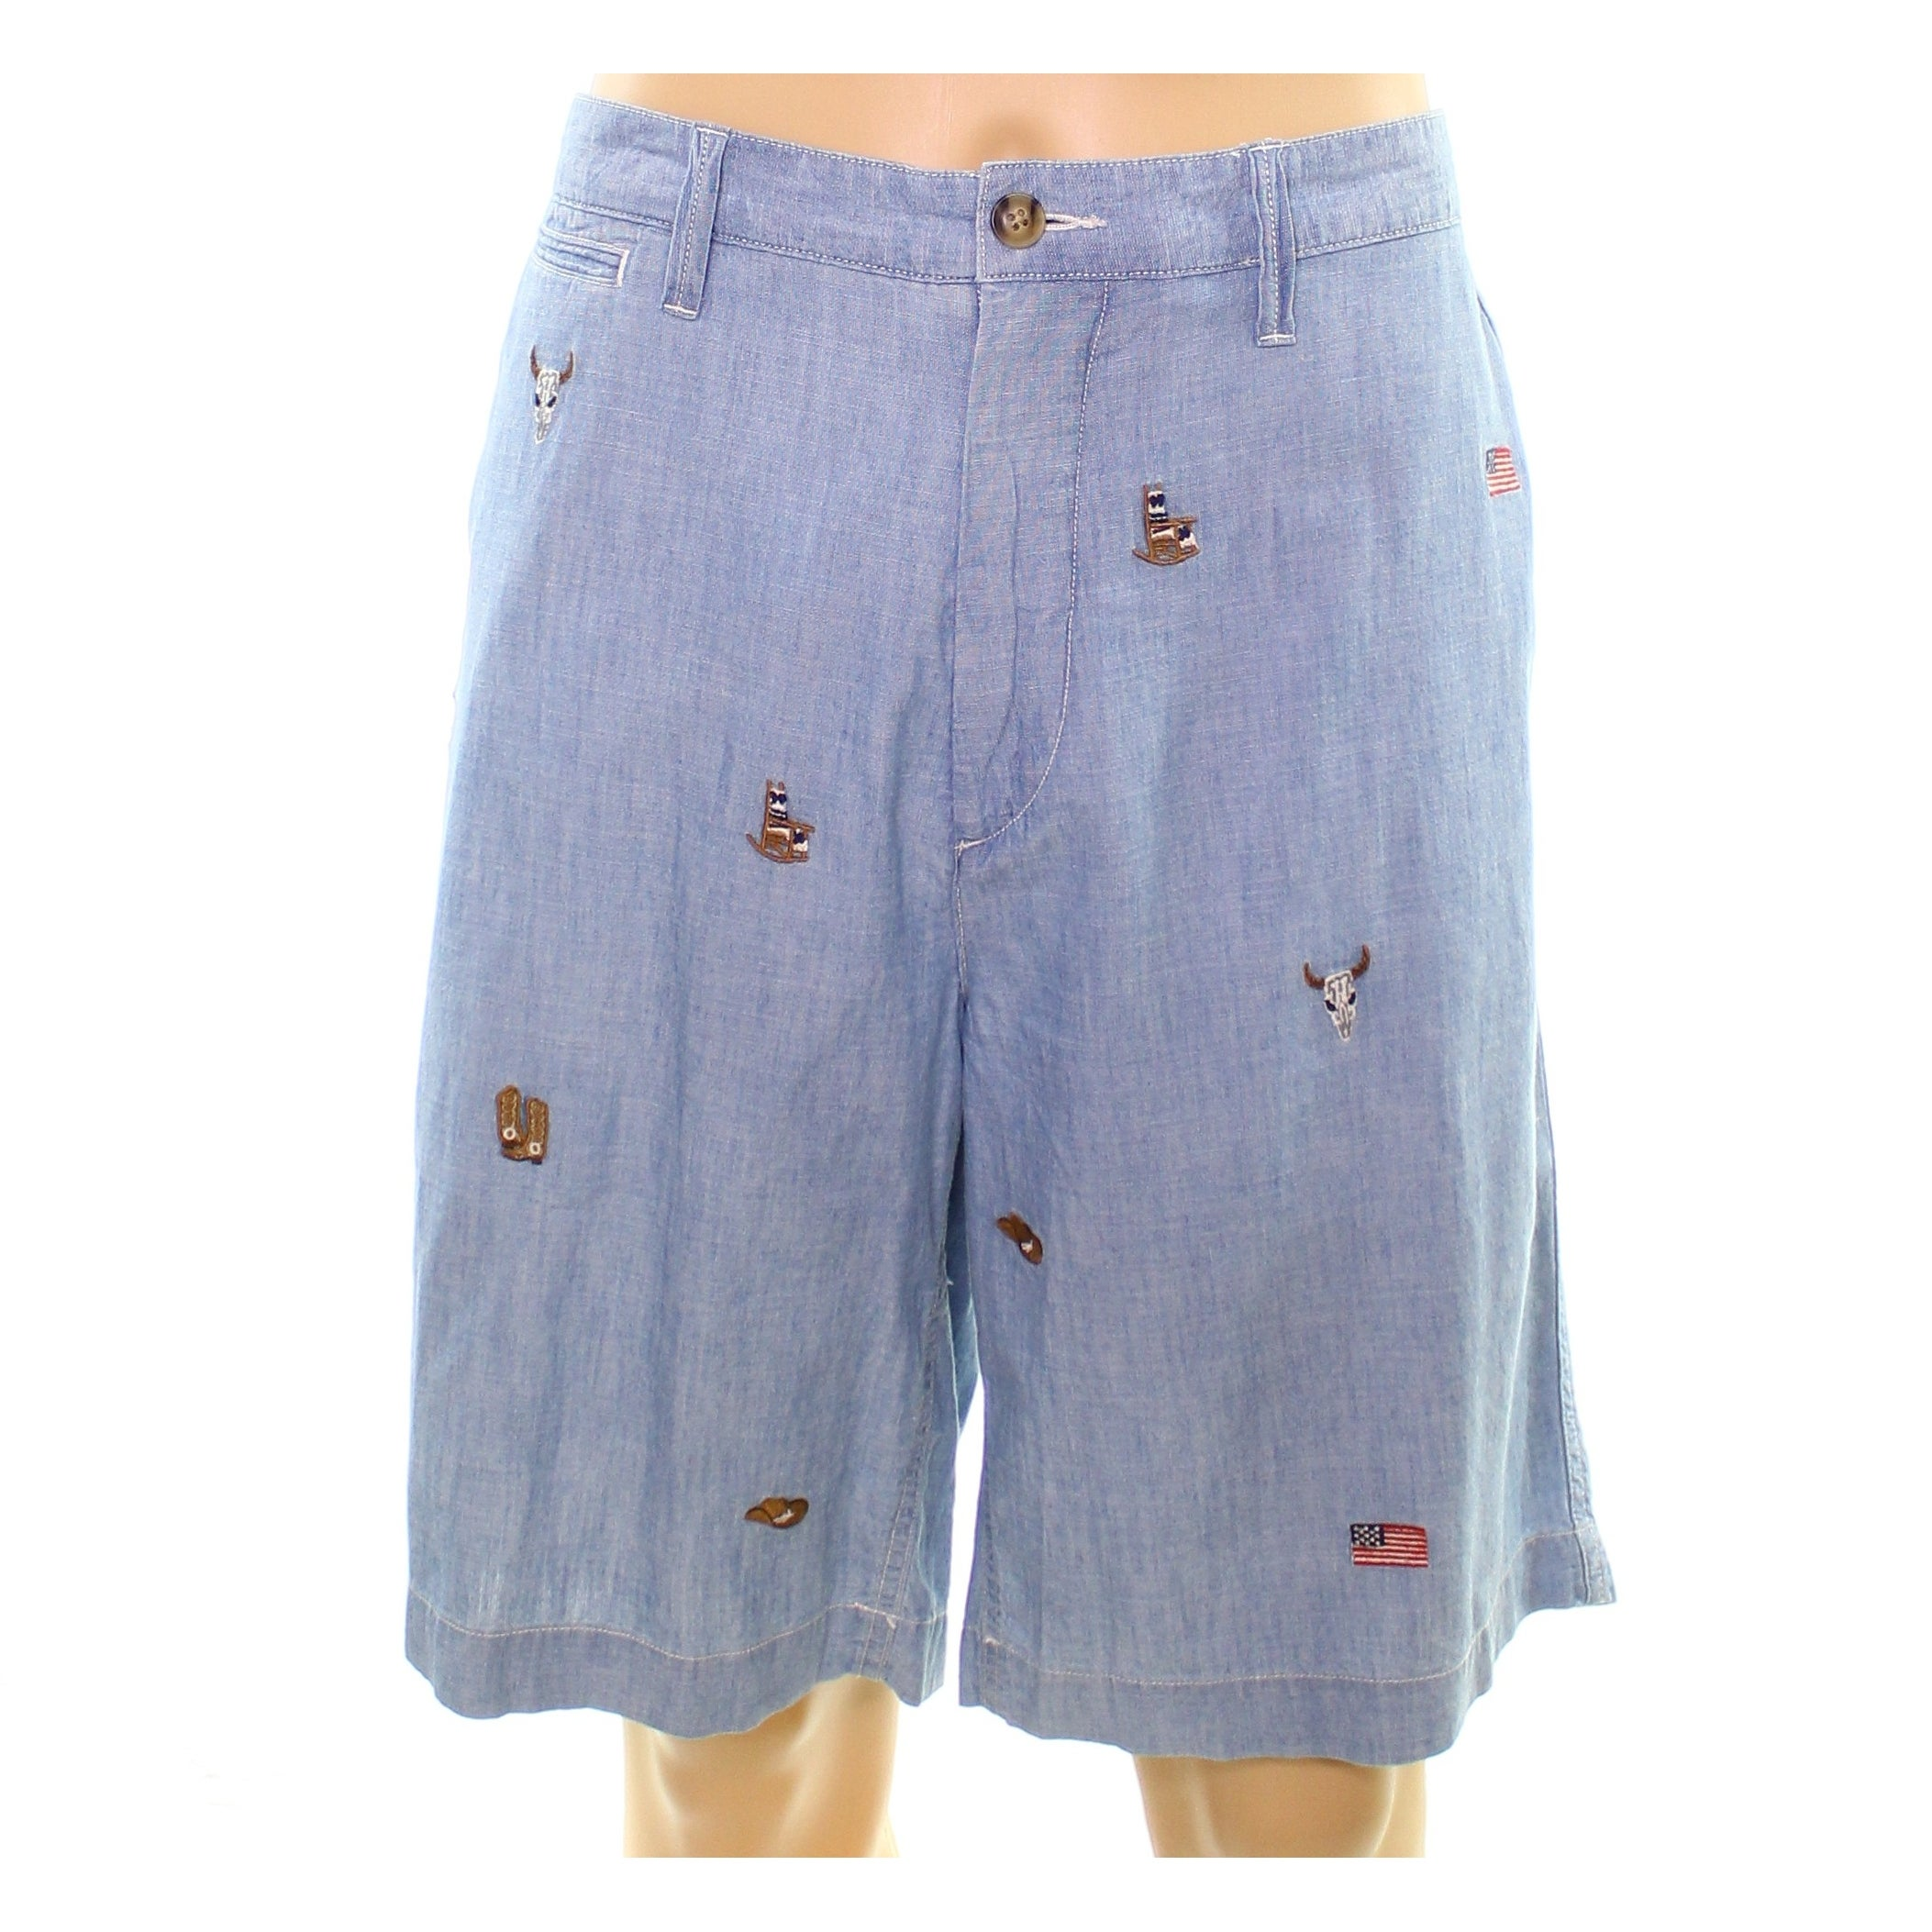 Mens Embroidered Polo Blue Size 42 Ralph Shorts Lauren Chambray hrsQCxtd